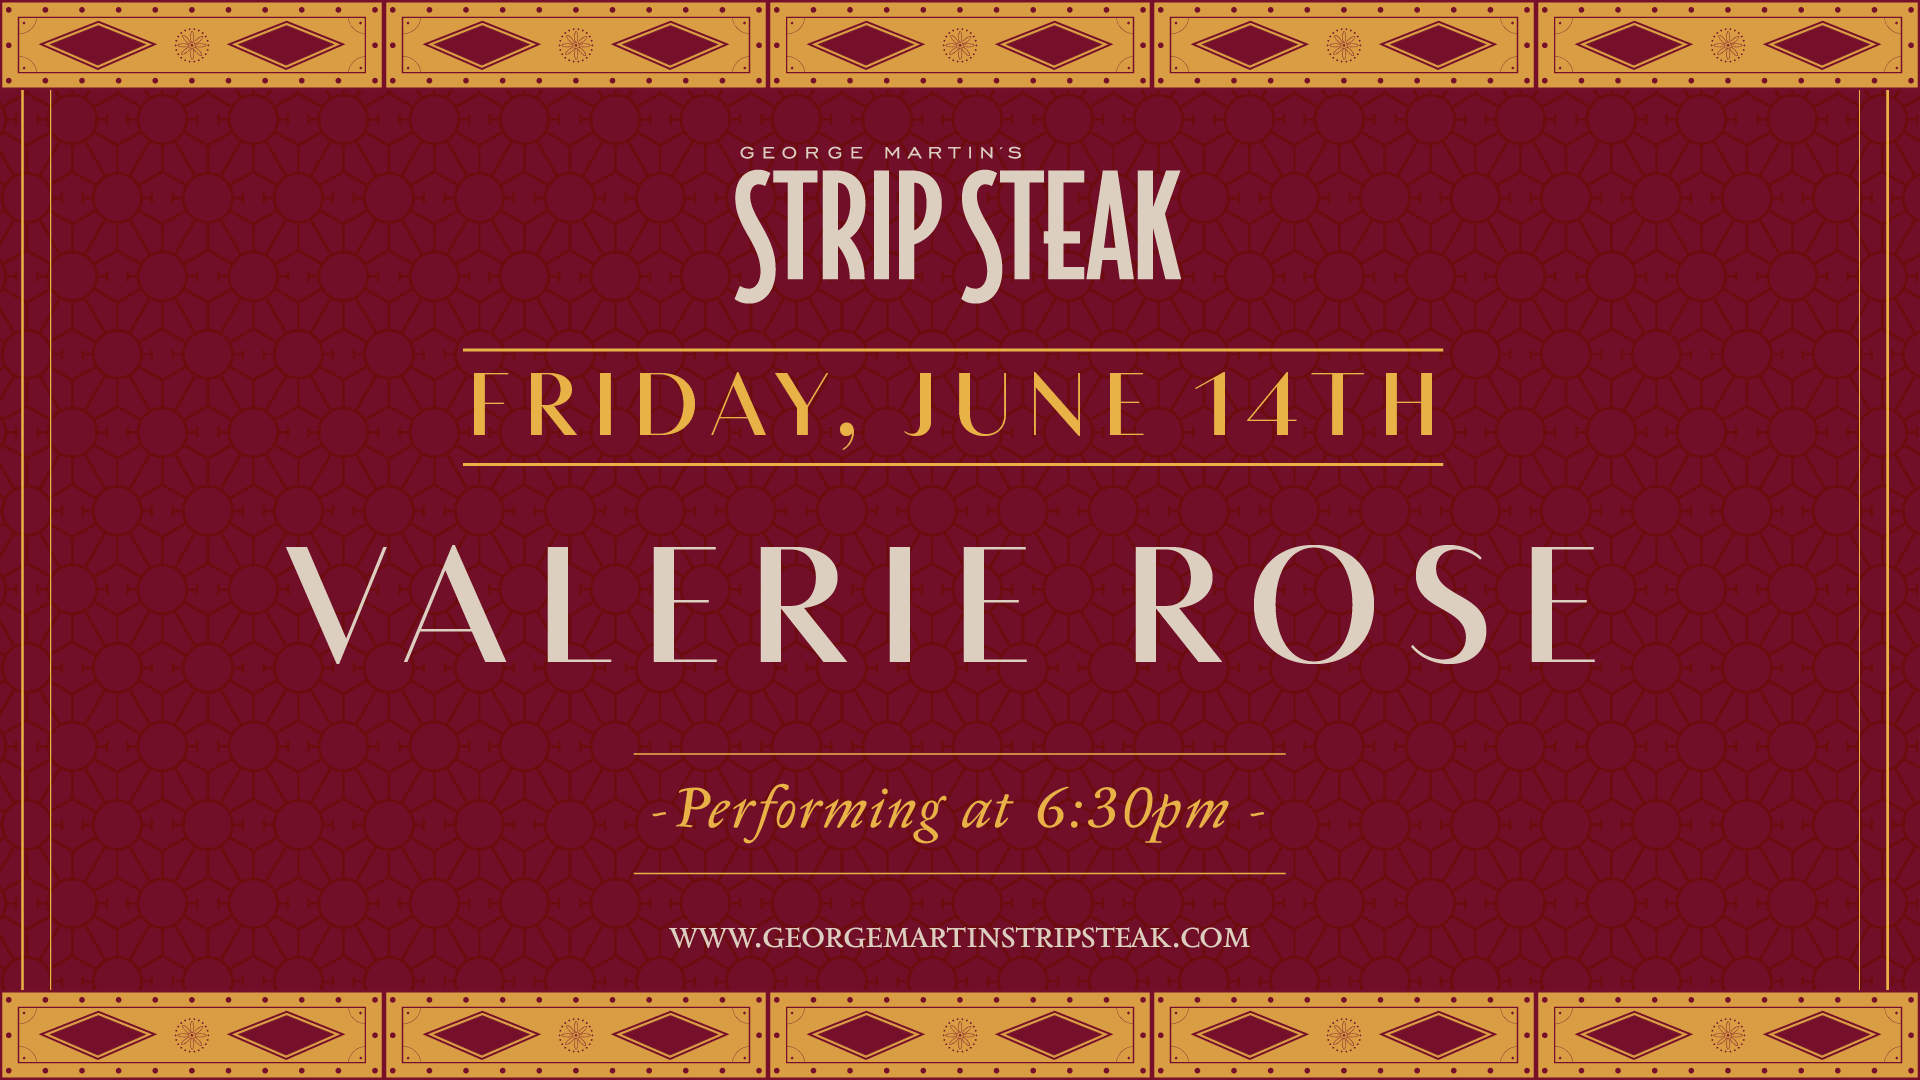 Flyer for live music with Valerie Rose on June 14th starting at 6:30pm.